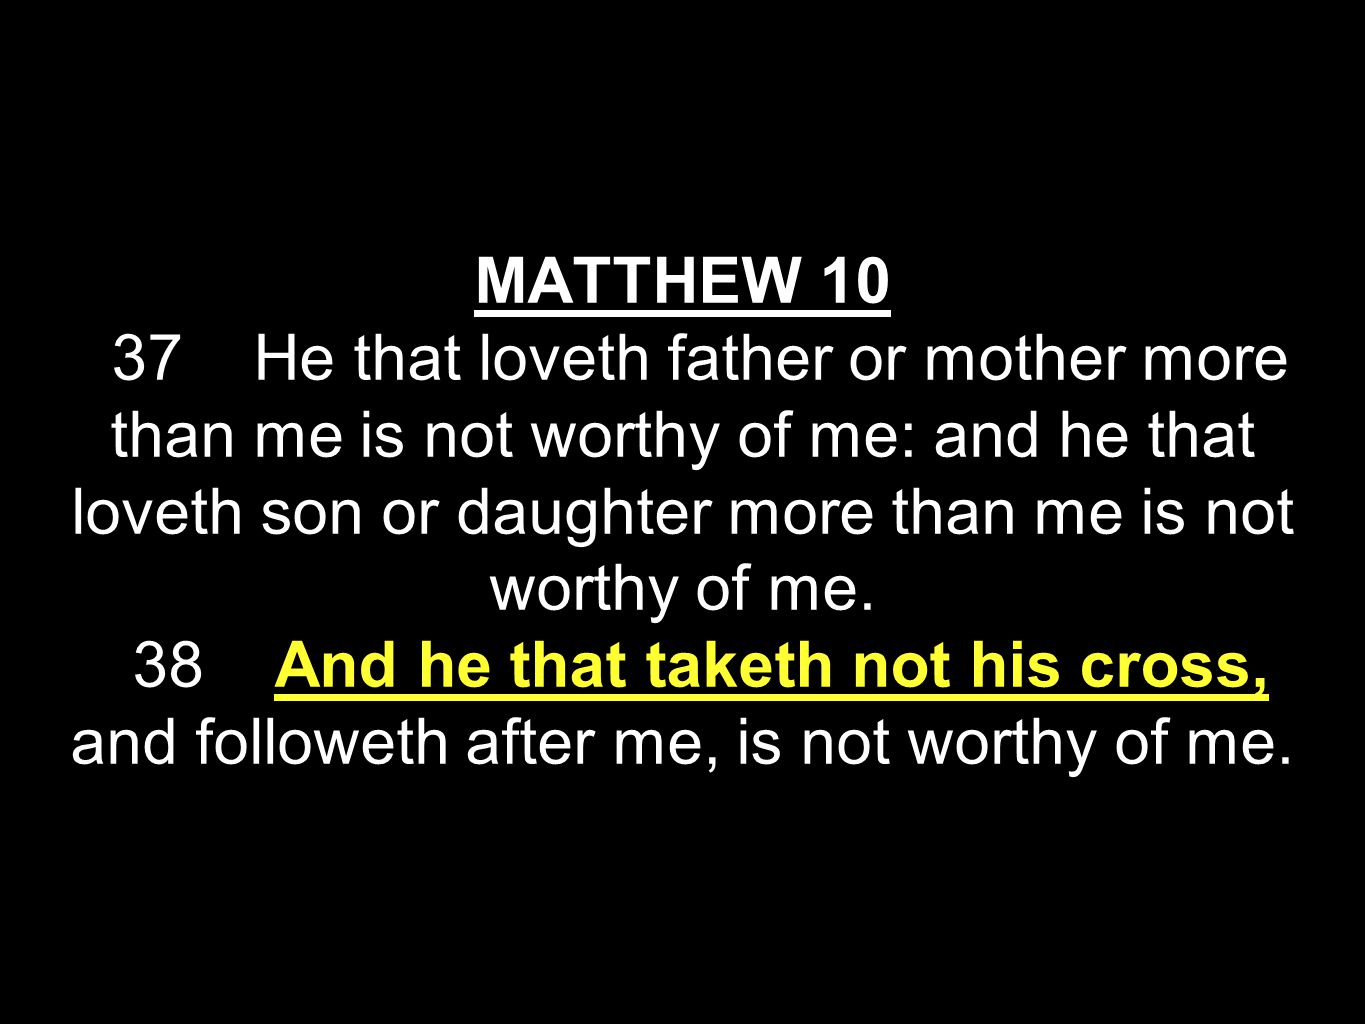 MATTHEW 10 37 He that loveth father or mother more than me is not worthy of me: and he that loveth son or daughter more than me is not worthy of me.